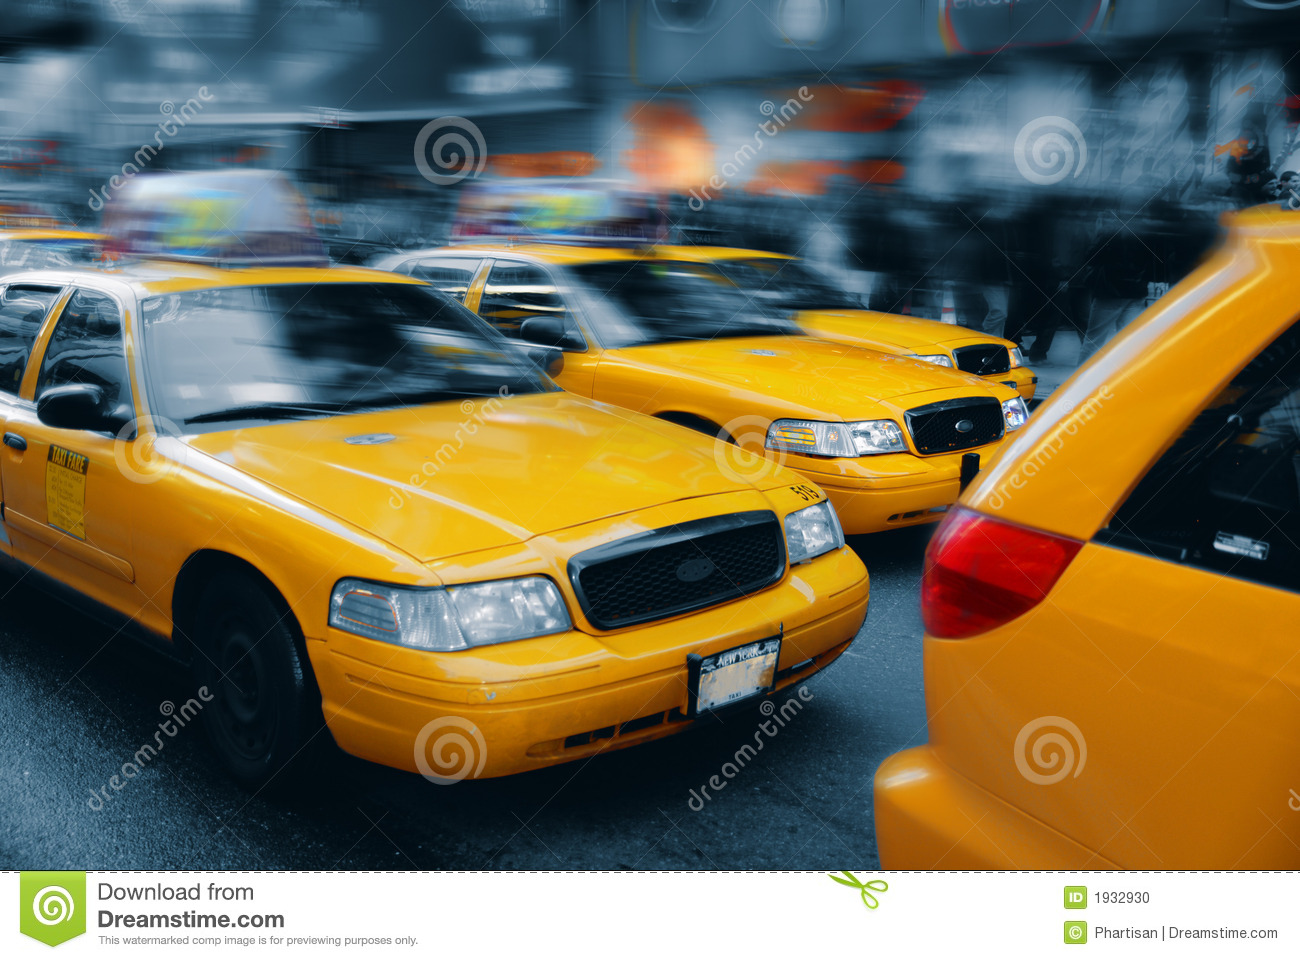 Taxi - Times Square, Manhattan, NY